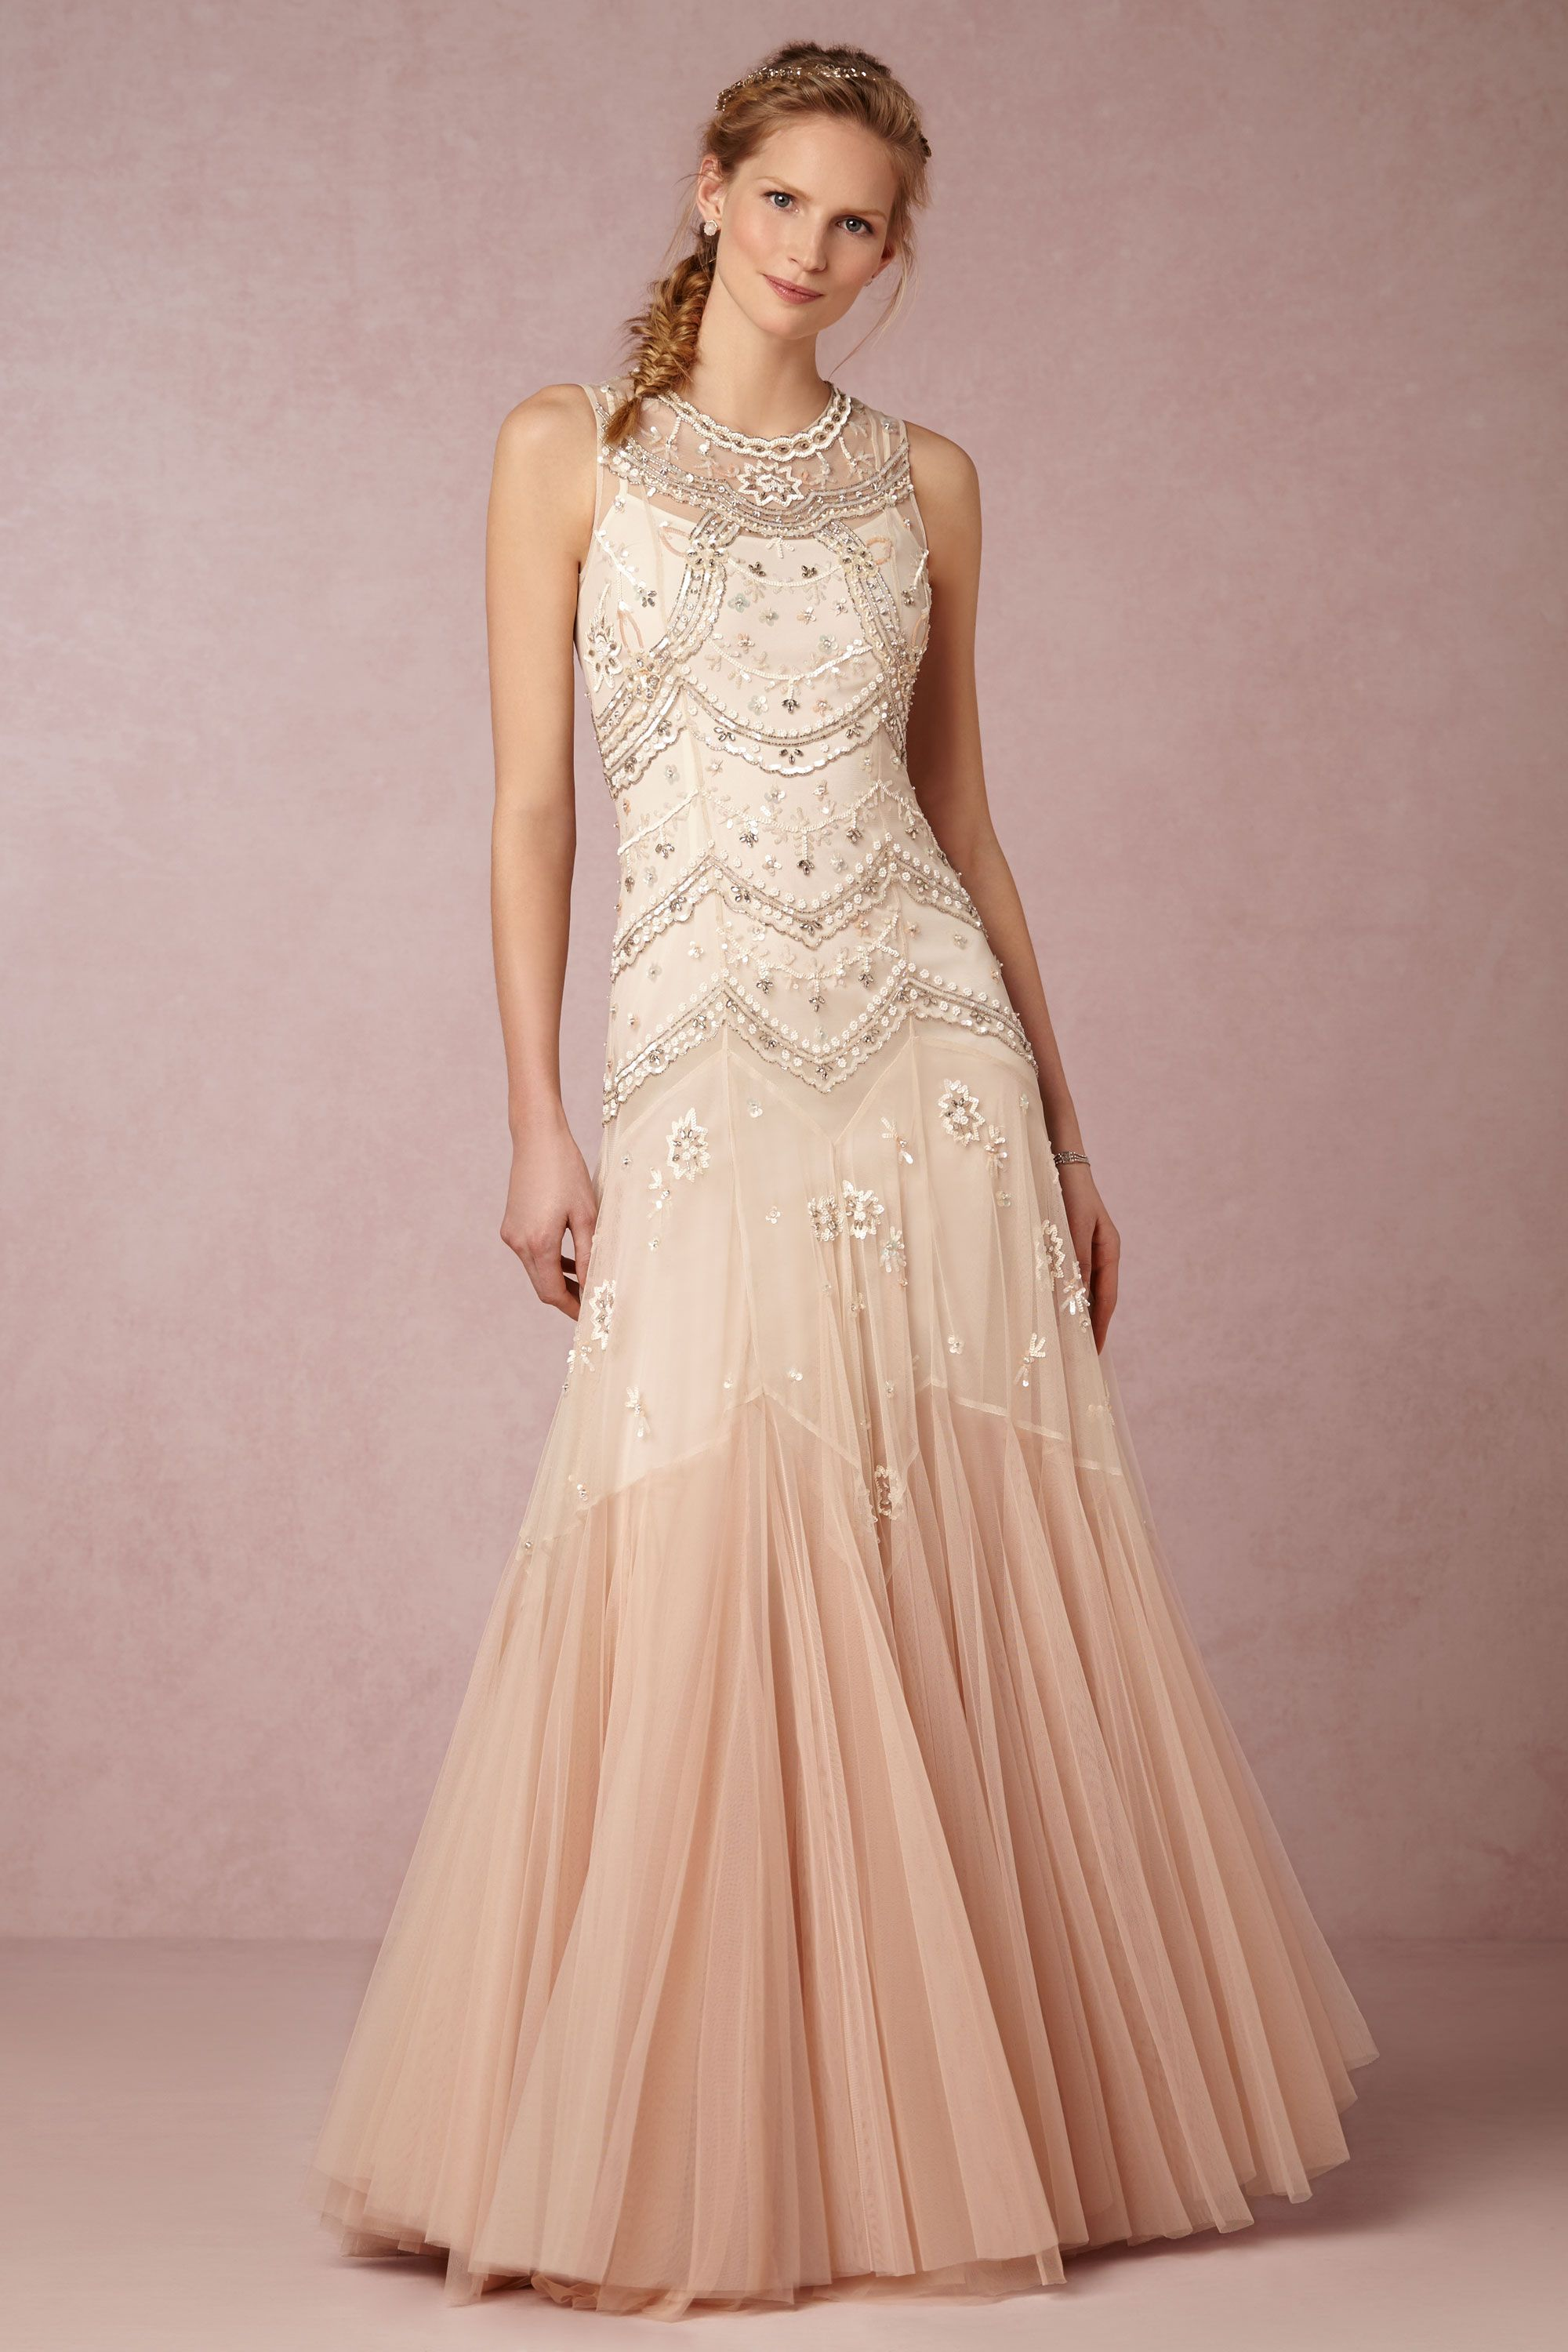 cate gown wedding gowns Needle Thread Cream Dust Pink Cate Gown BHLDN